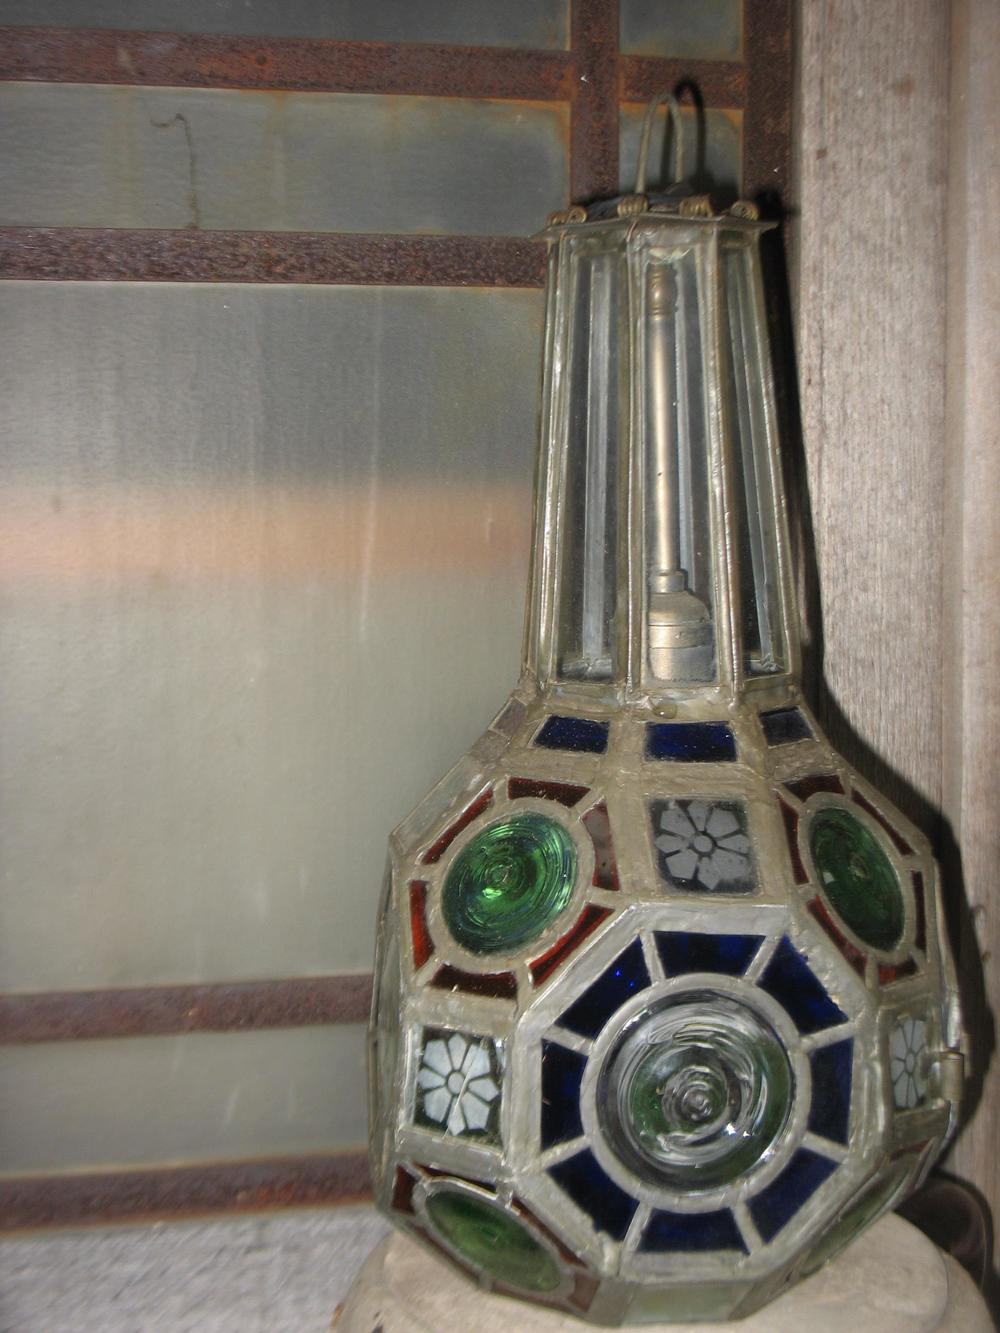 This is a magnificent stained/art glass light fixture.  Octagon shaped it is difficult to give you exact measurements, but it is 16 inches tall and can be any length with a chain placed as you need it to be for your ceiling. There is everything in this fixture, green bulls eyes, etched flowers, blue pieces of small glass around large bulls eye and red small pieces of glass around small bulls eyes.    This piece was stolen if anyone recognizes it, please contact us